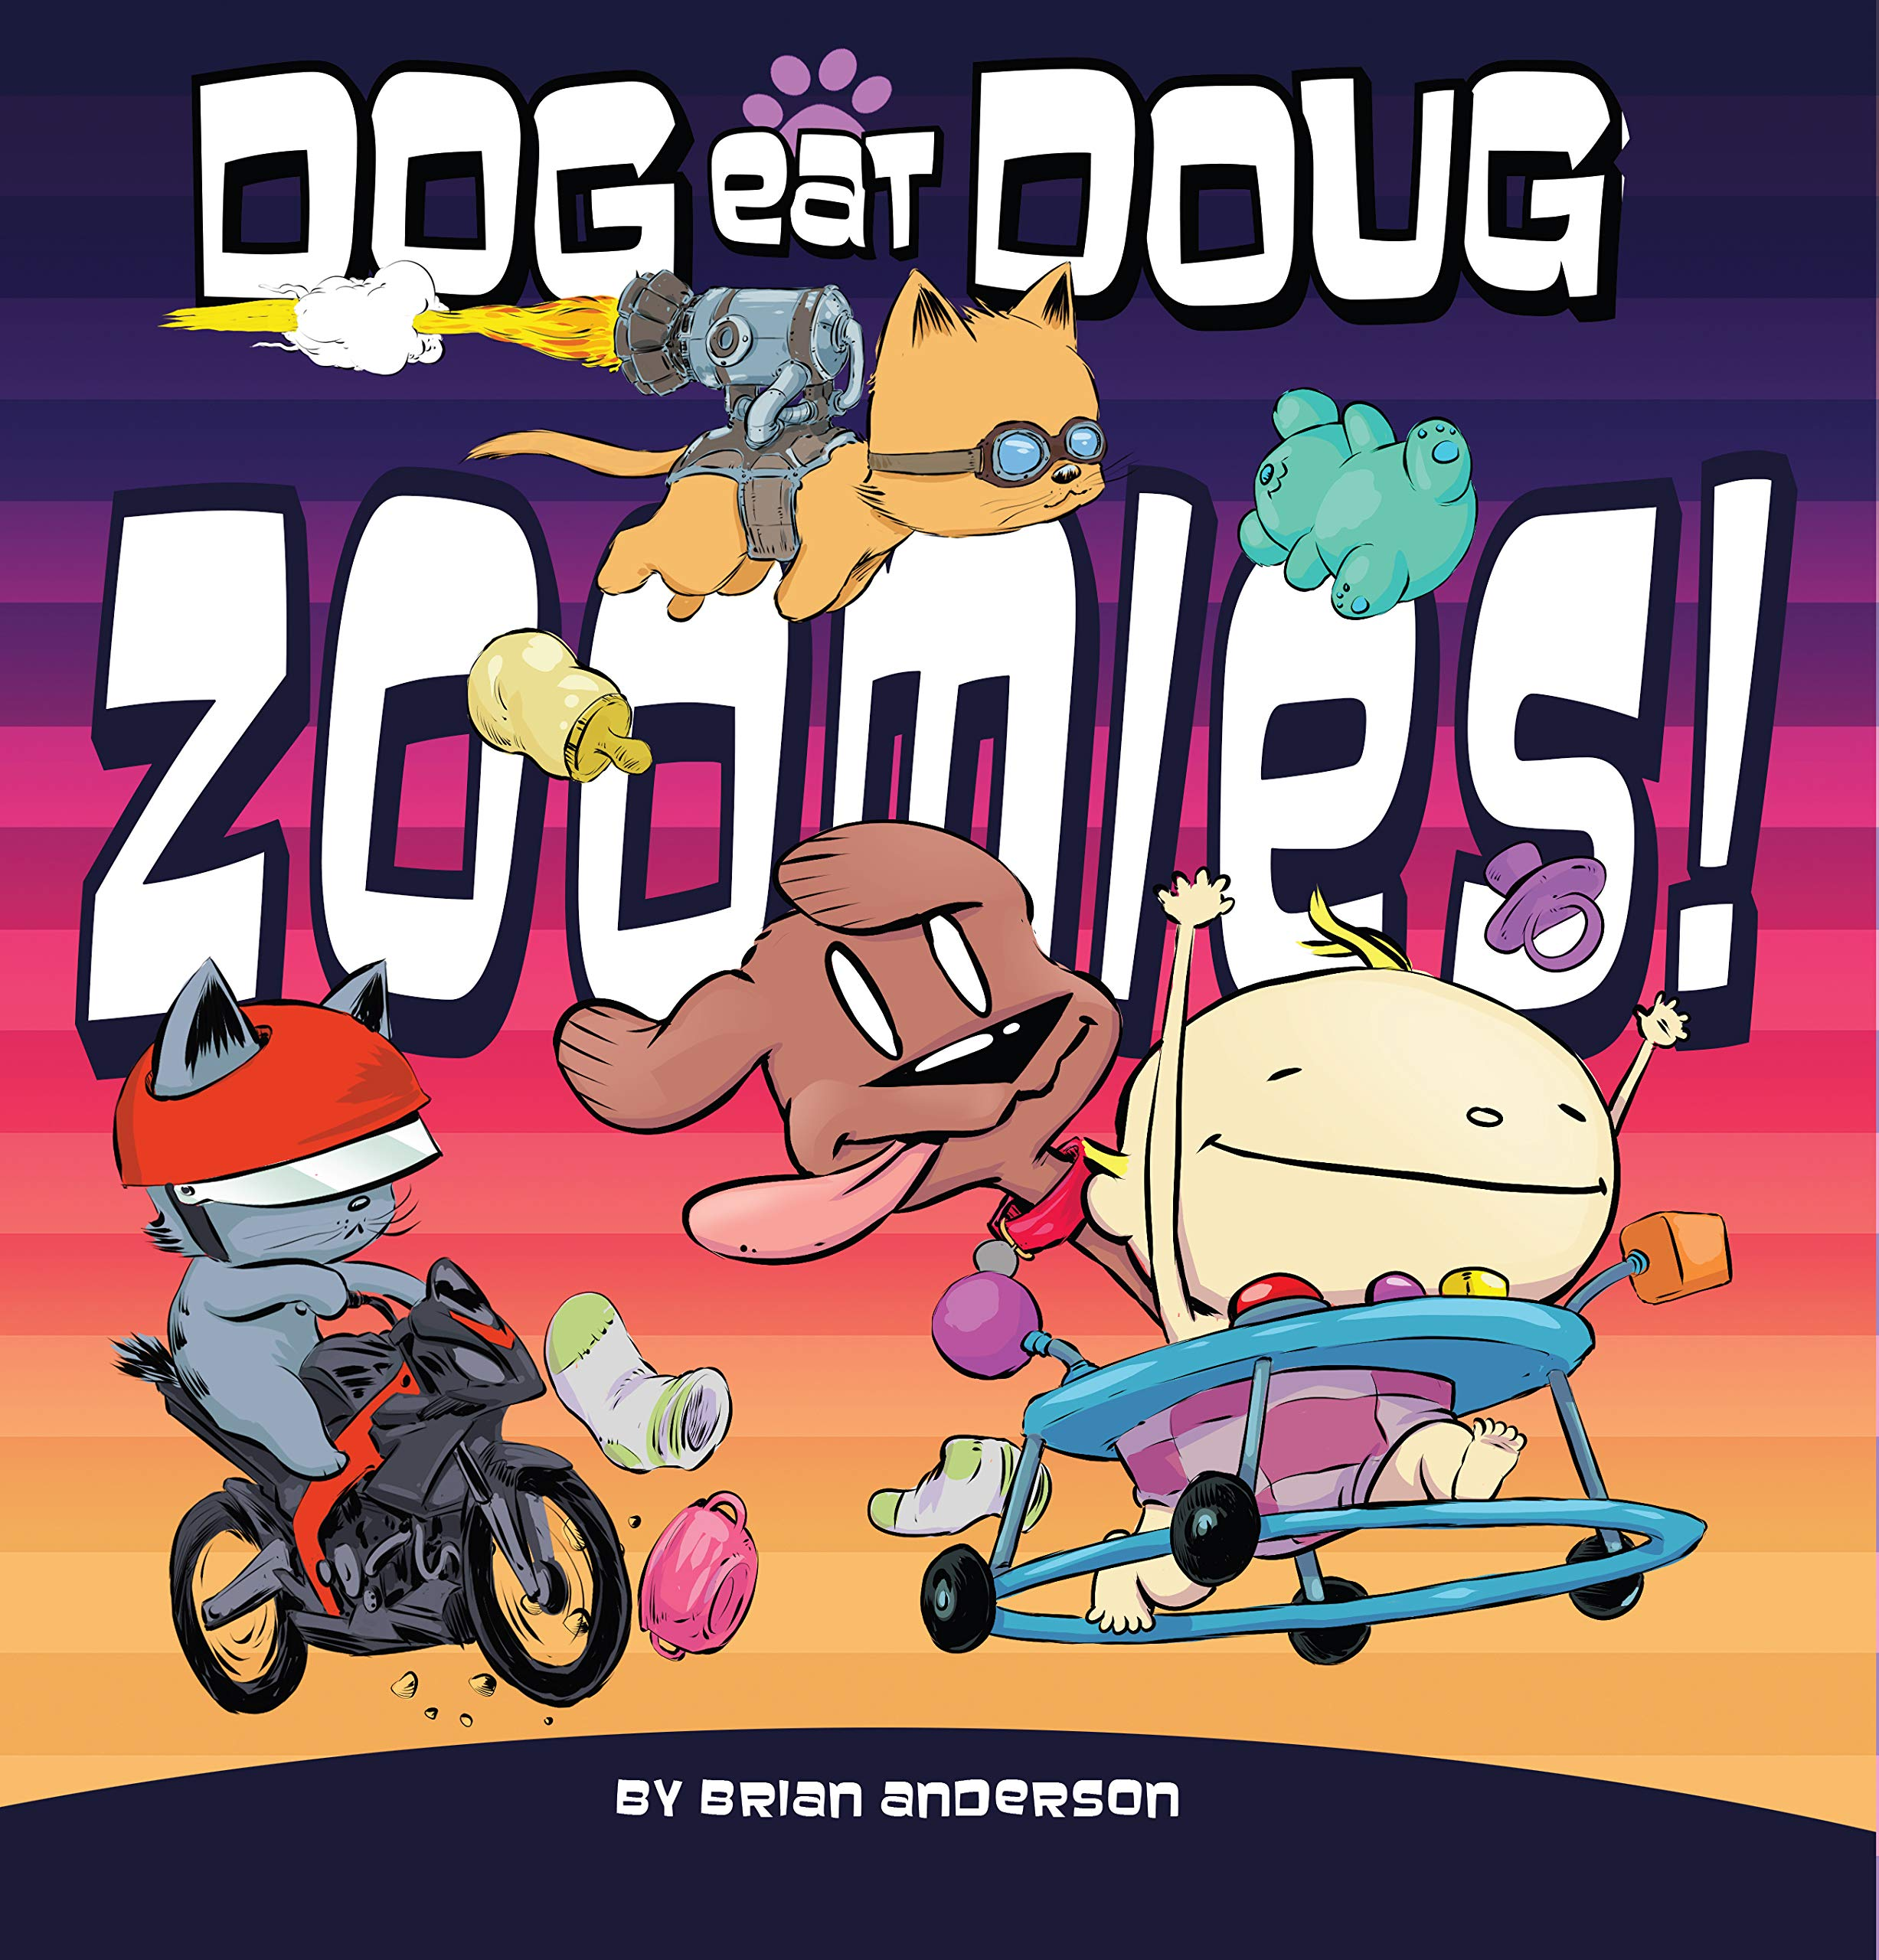 Dog eat Doug Graphic Novel: Zoomies!